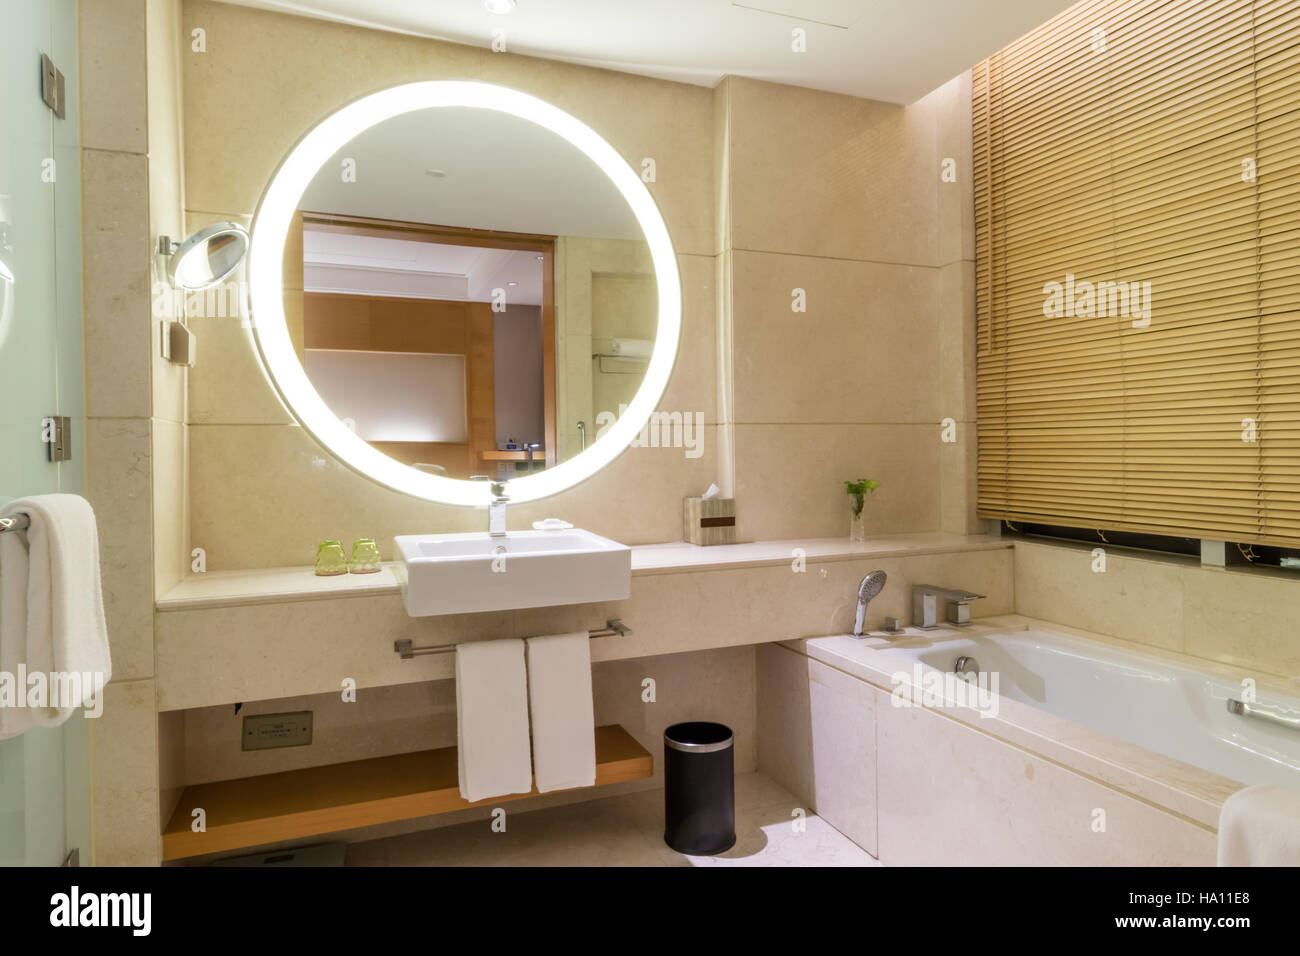 5 star bathroom designs - Luxury Ensuite 5 Star Bathroom In Bedroom